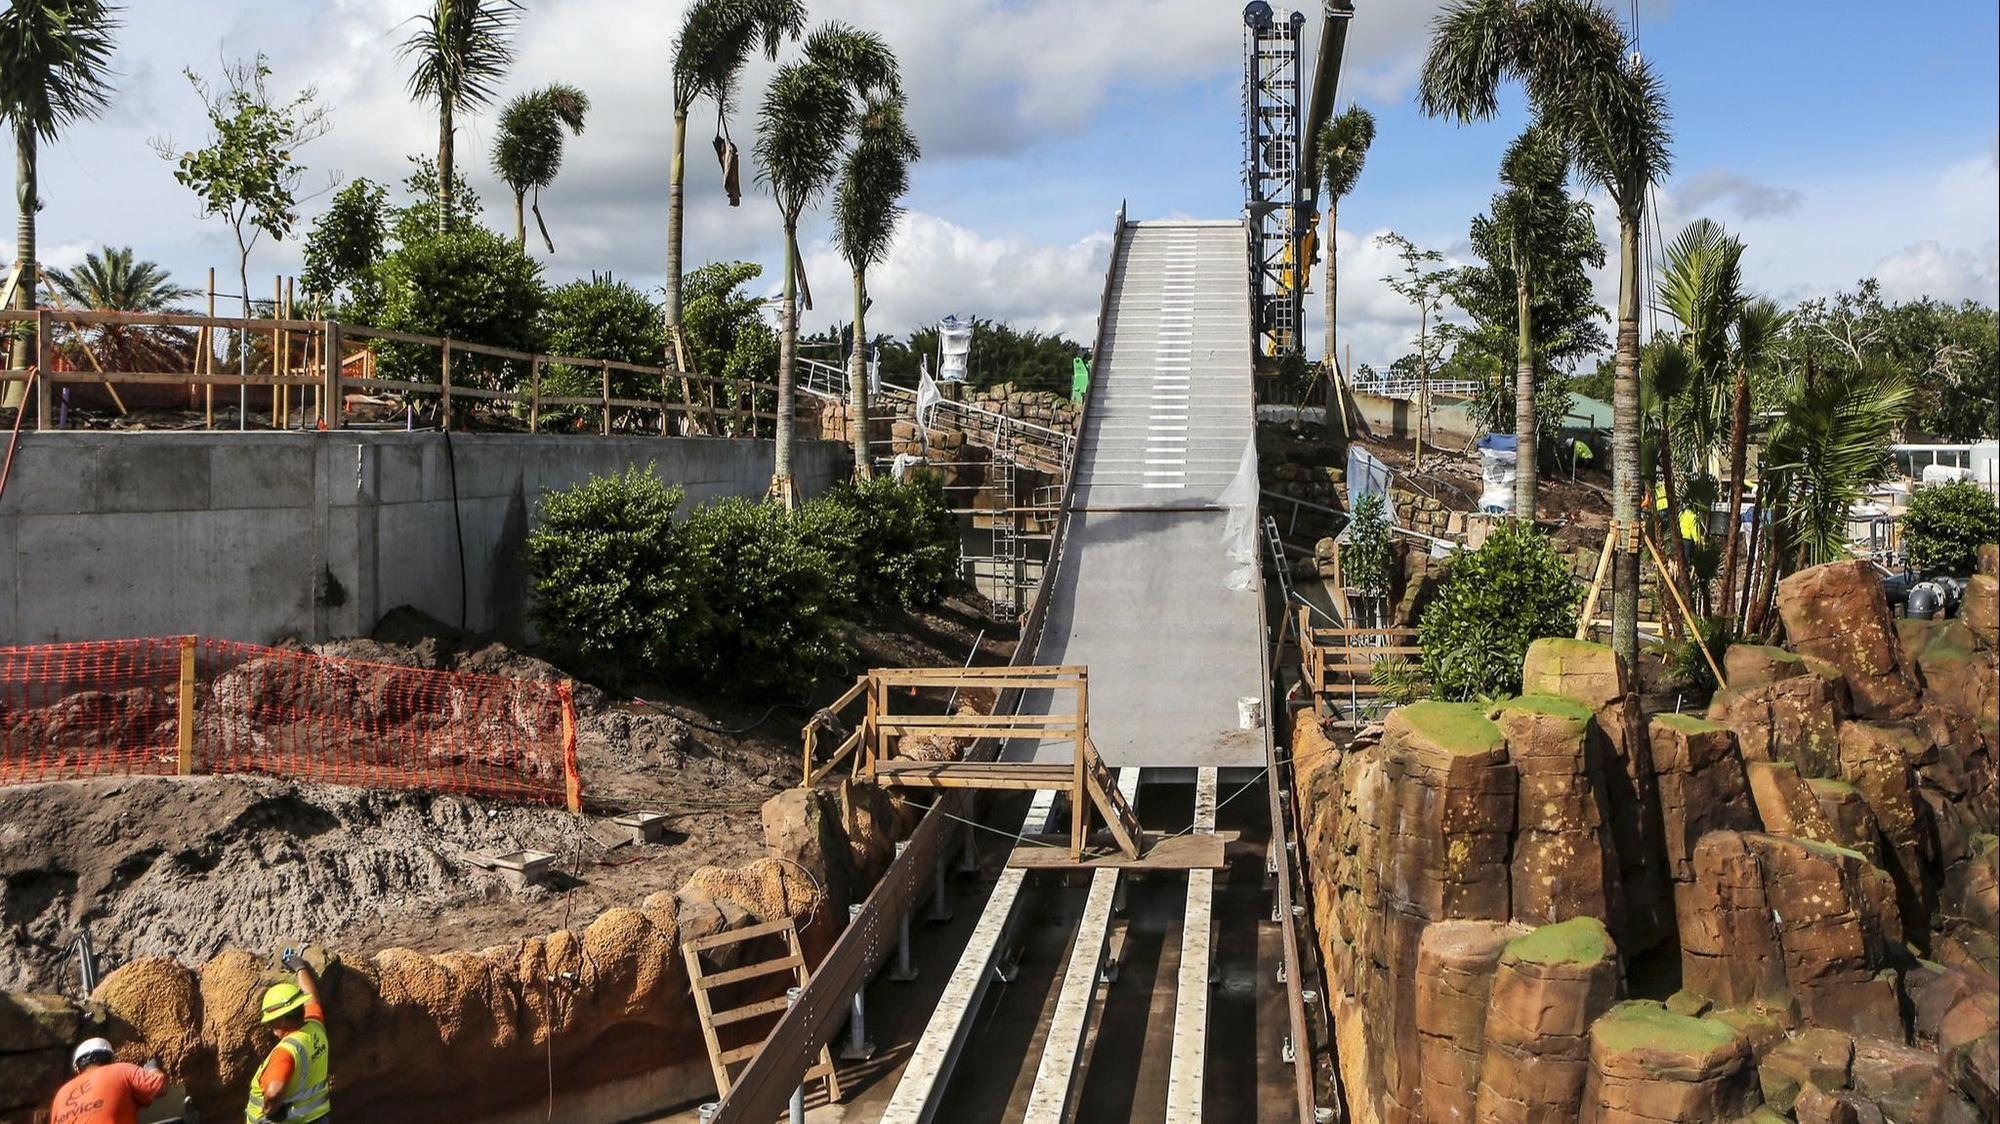 Texting While Driving >> SeaWorld Orlando: Rapids, 'appropriate' drenching await on ...